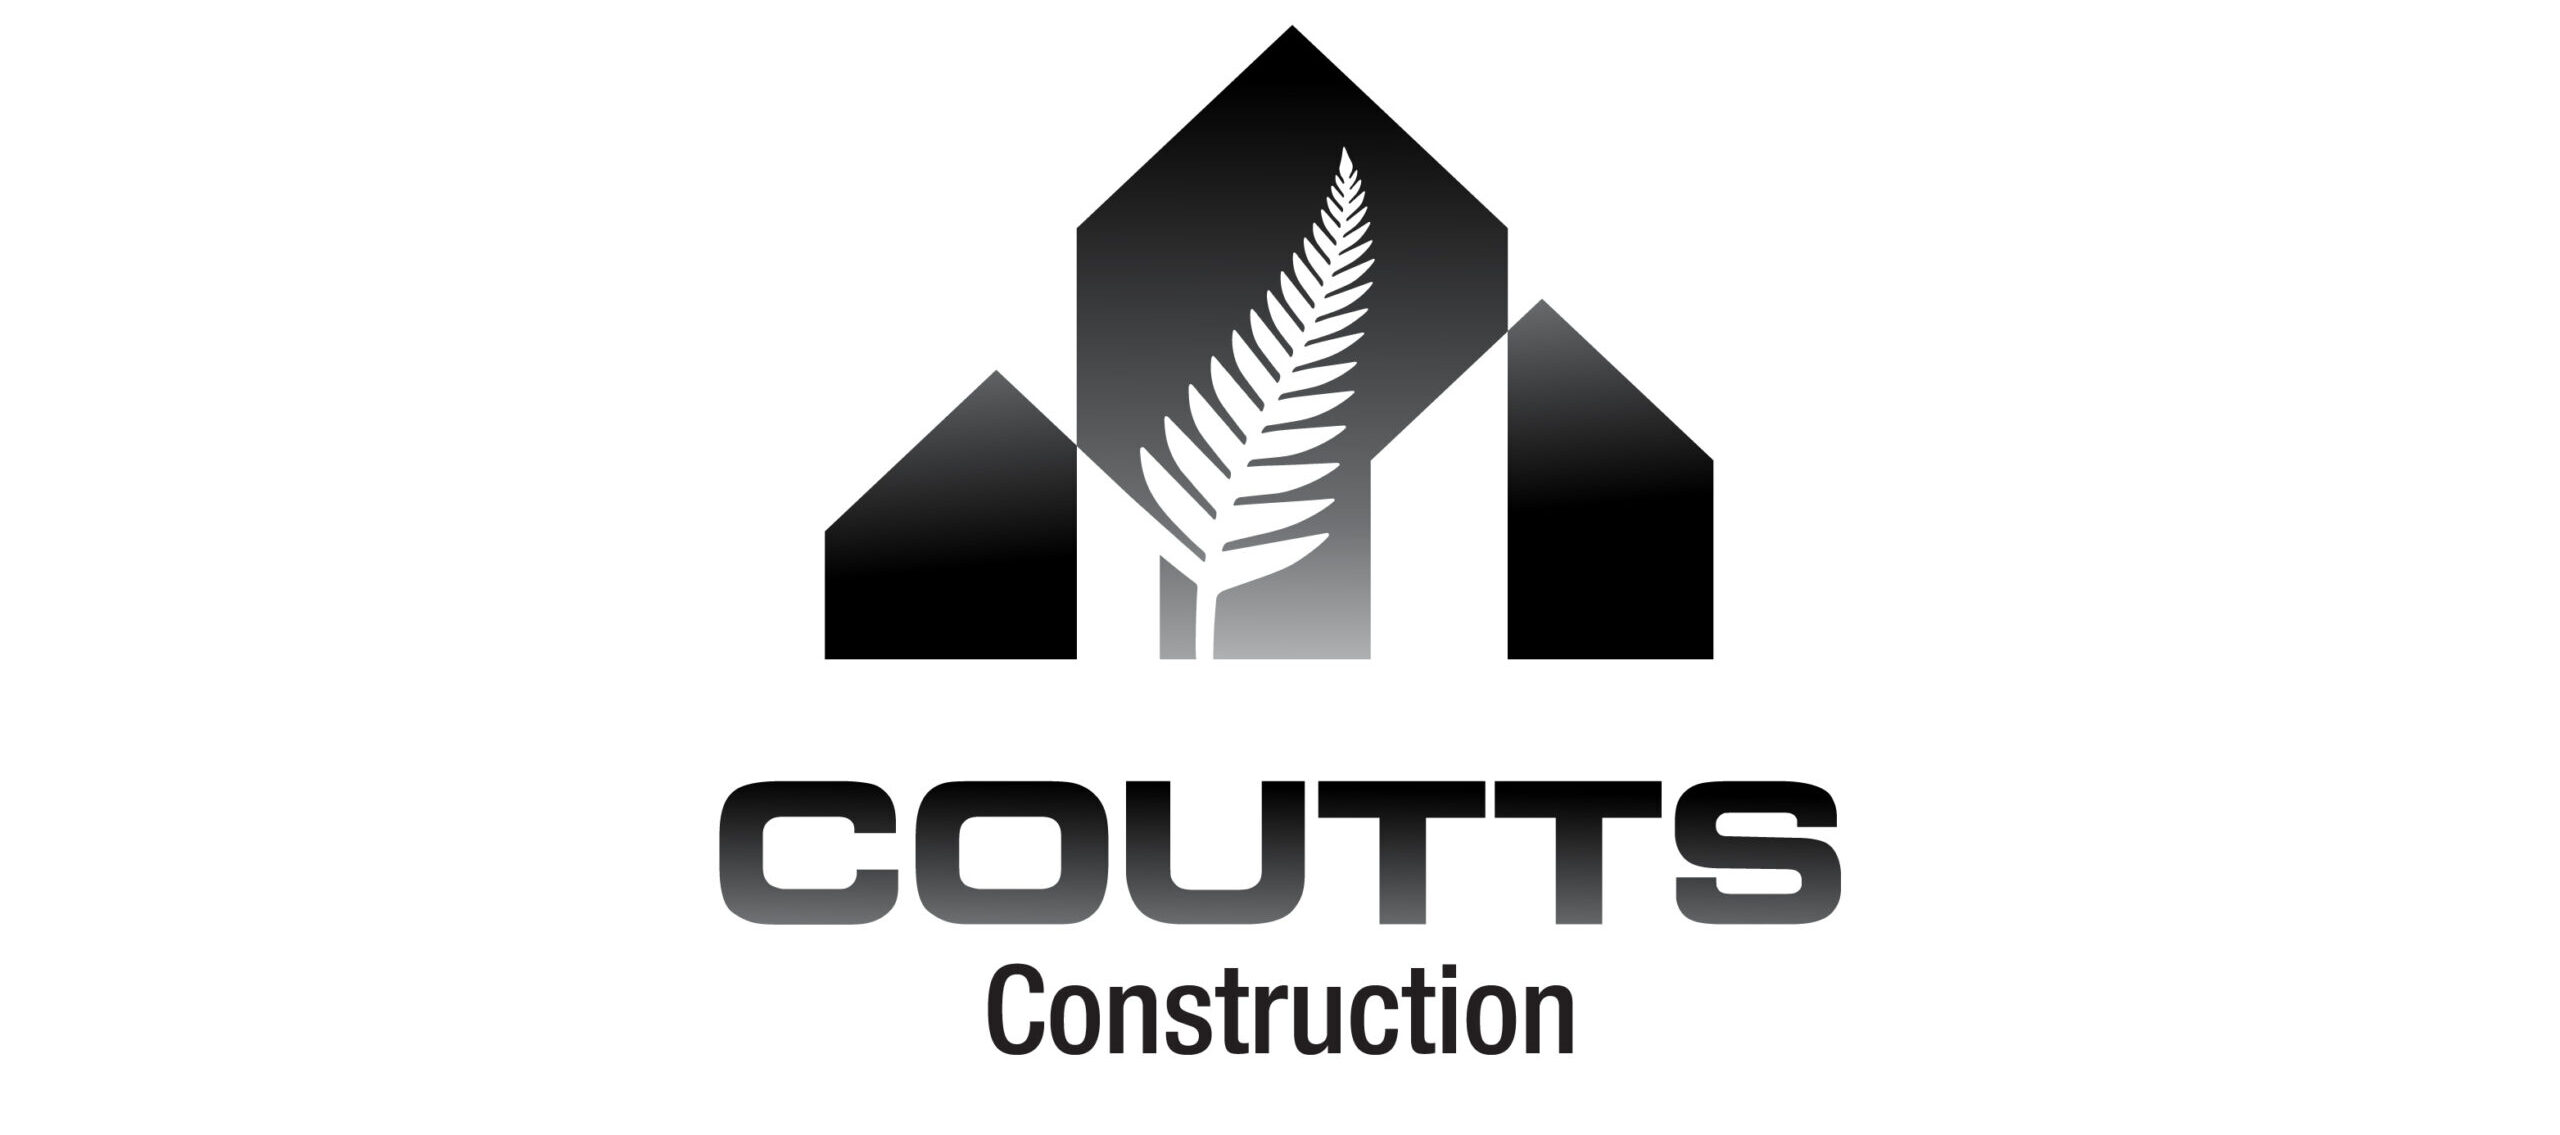 Coutts Construction